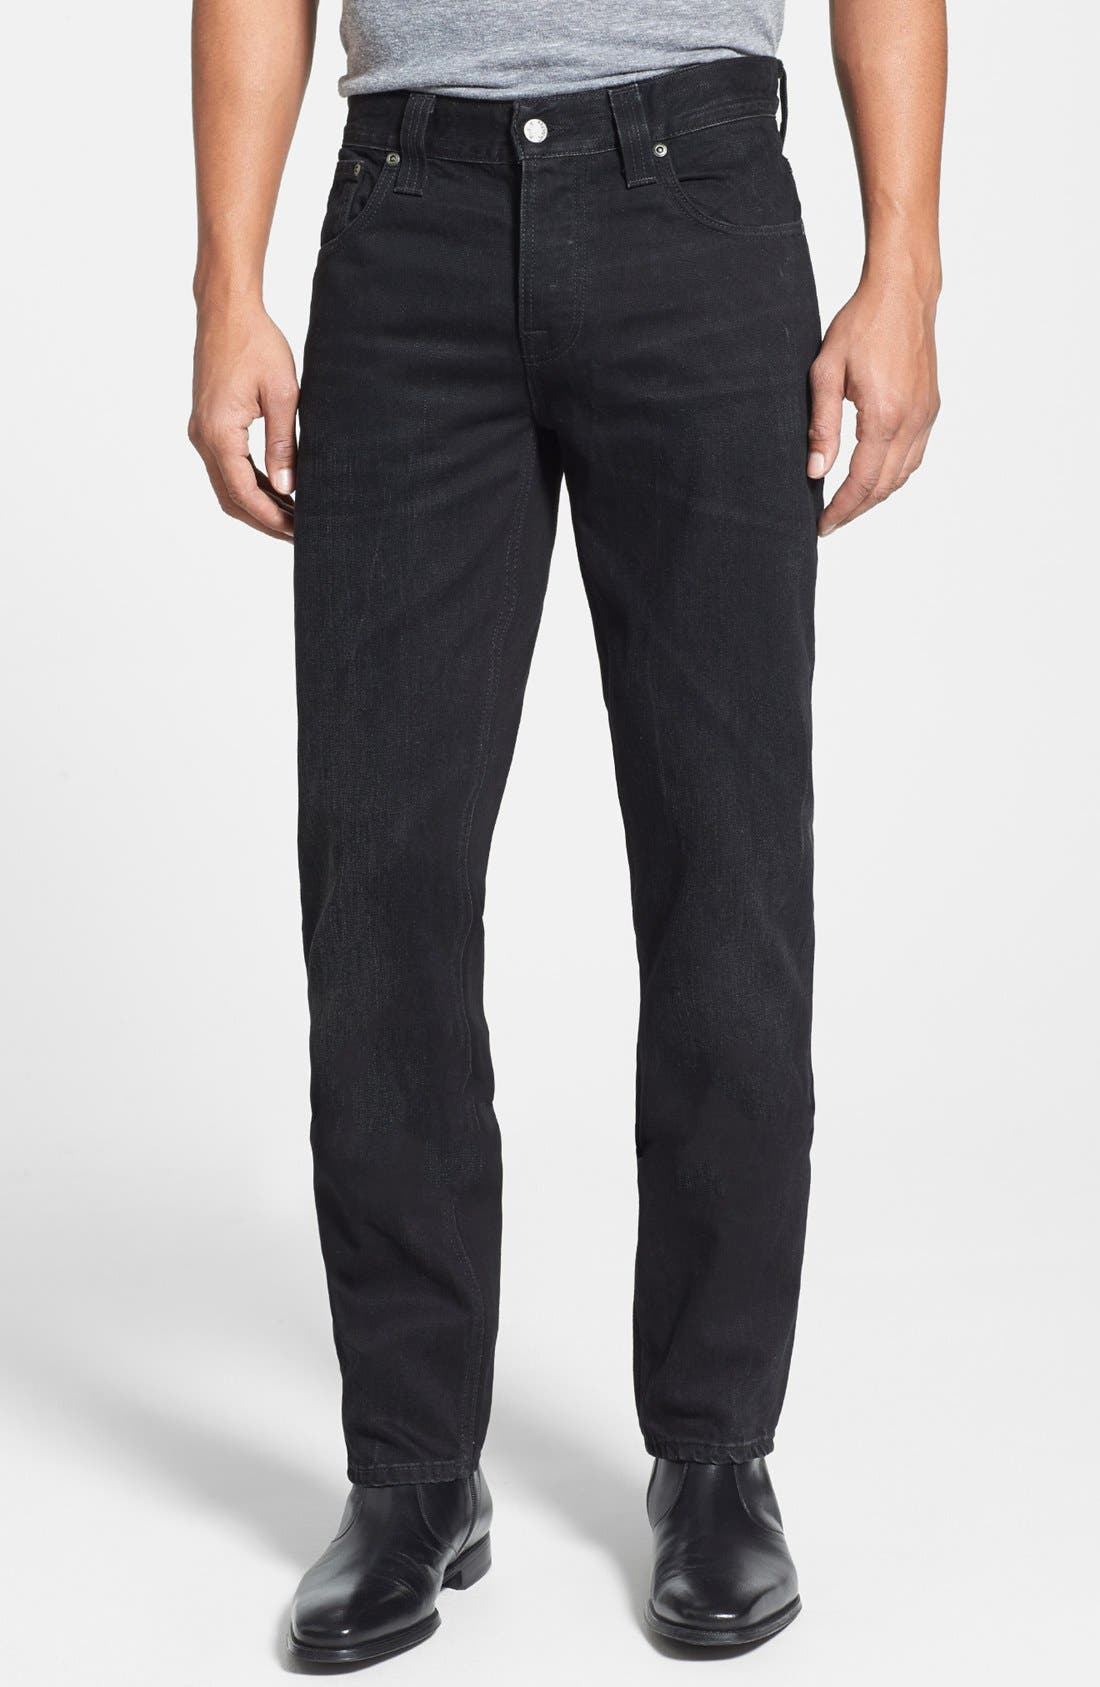 Main Image - Nudie Jeans 'Grim Tim' Skinny Fit Jeans (Organic Black Grease)